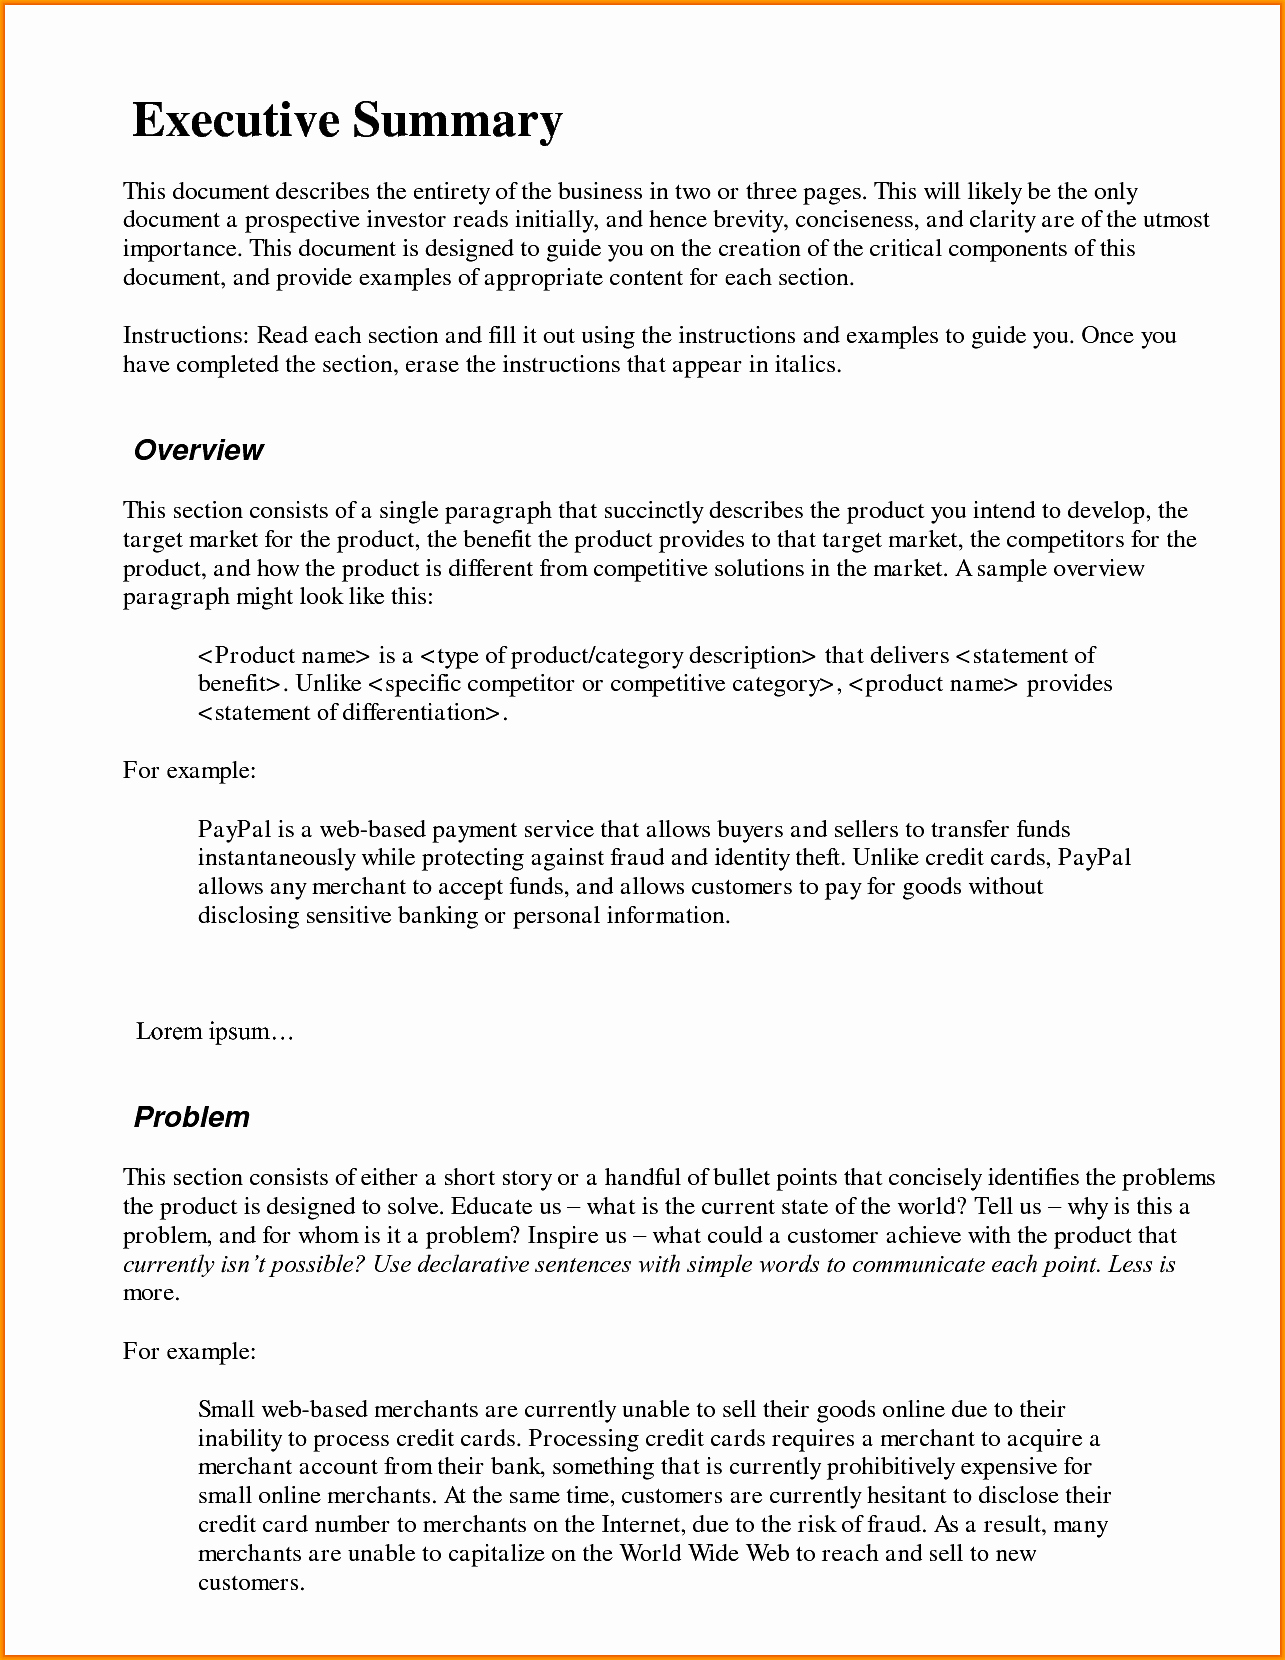 executive summary memo format wedding spreadsheet frost fig11 010 png example format 2